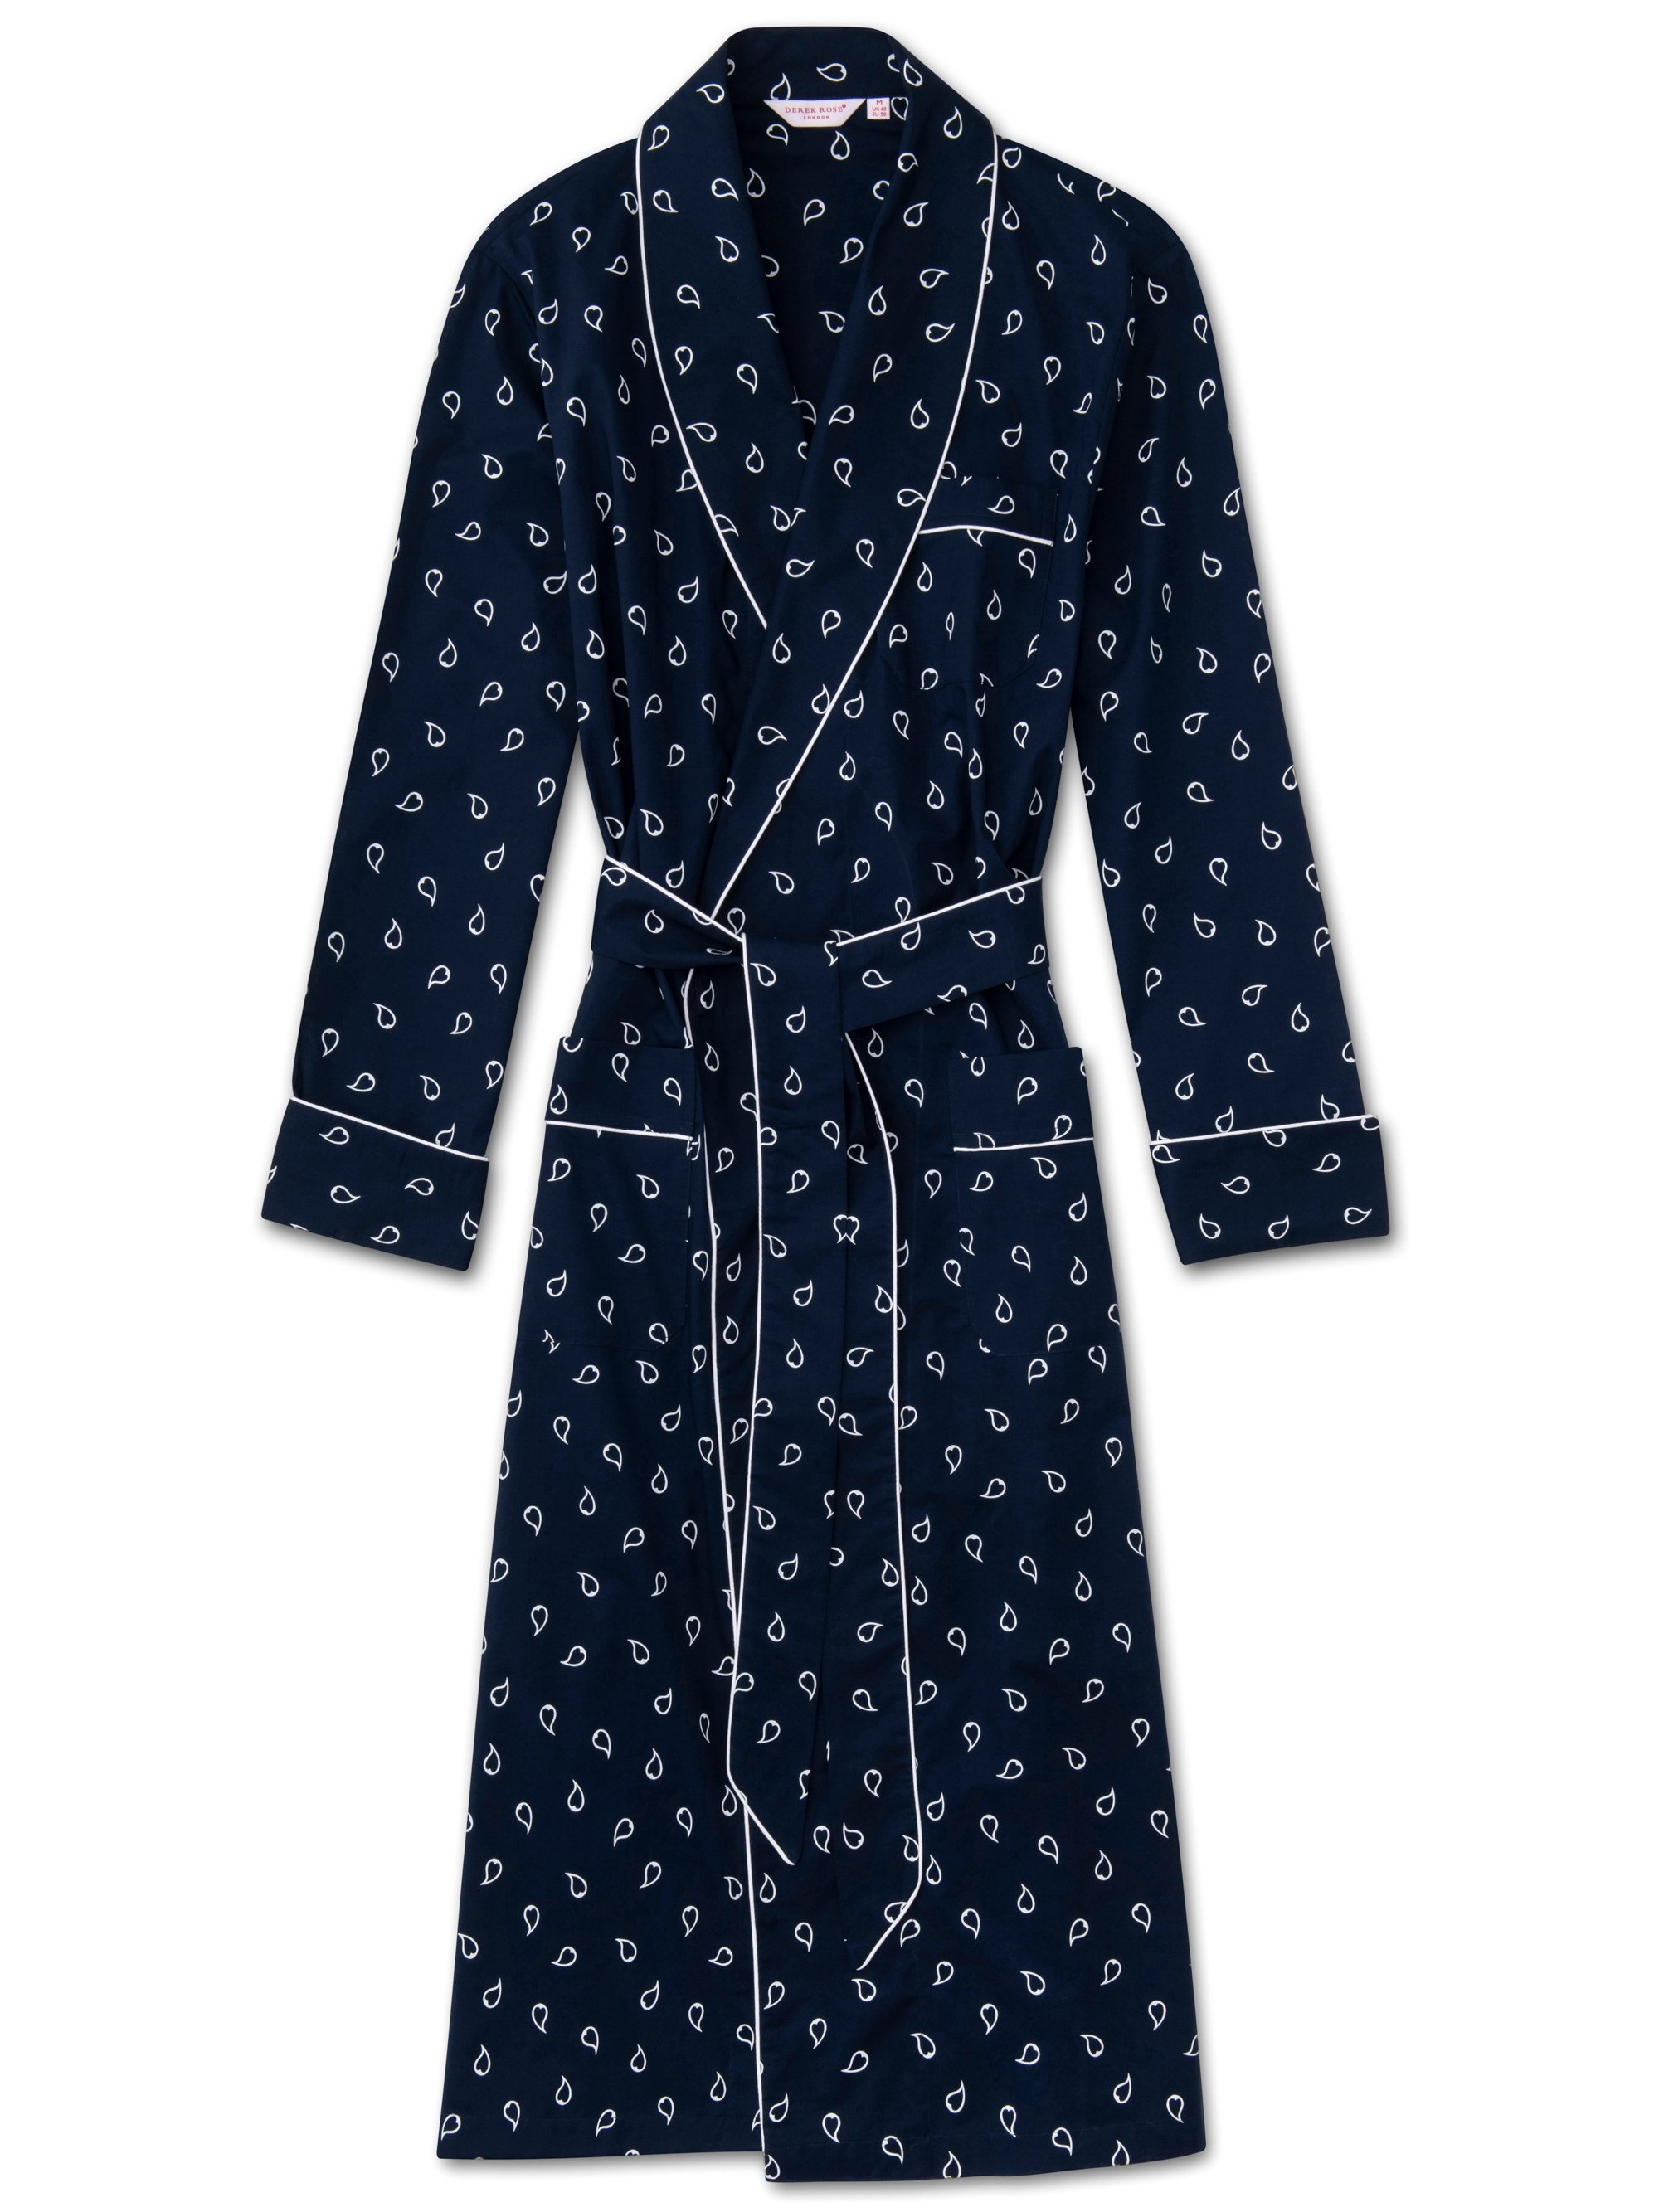 Men's Piped Dressing Gown Nelson 74 Cotton Batiste Navy